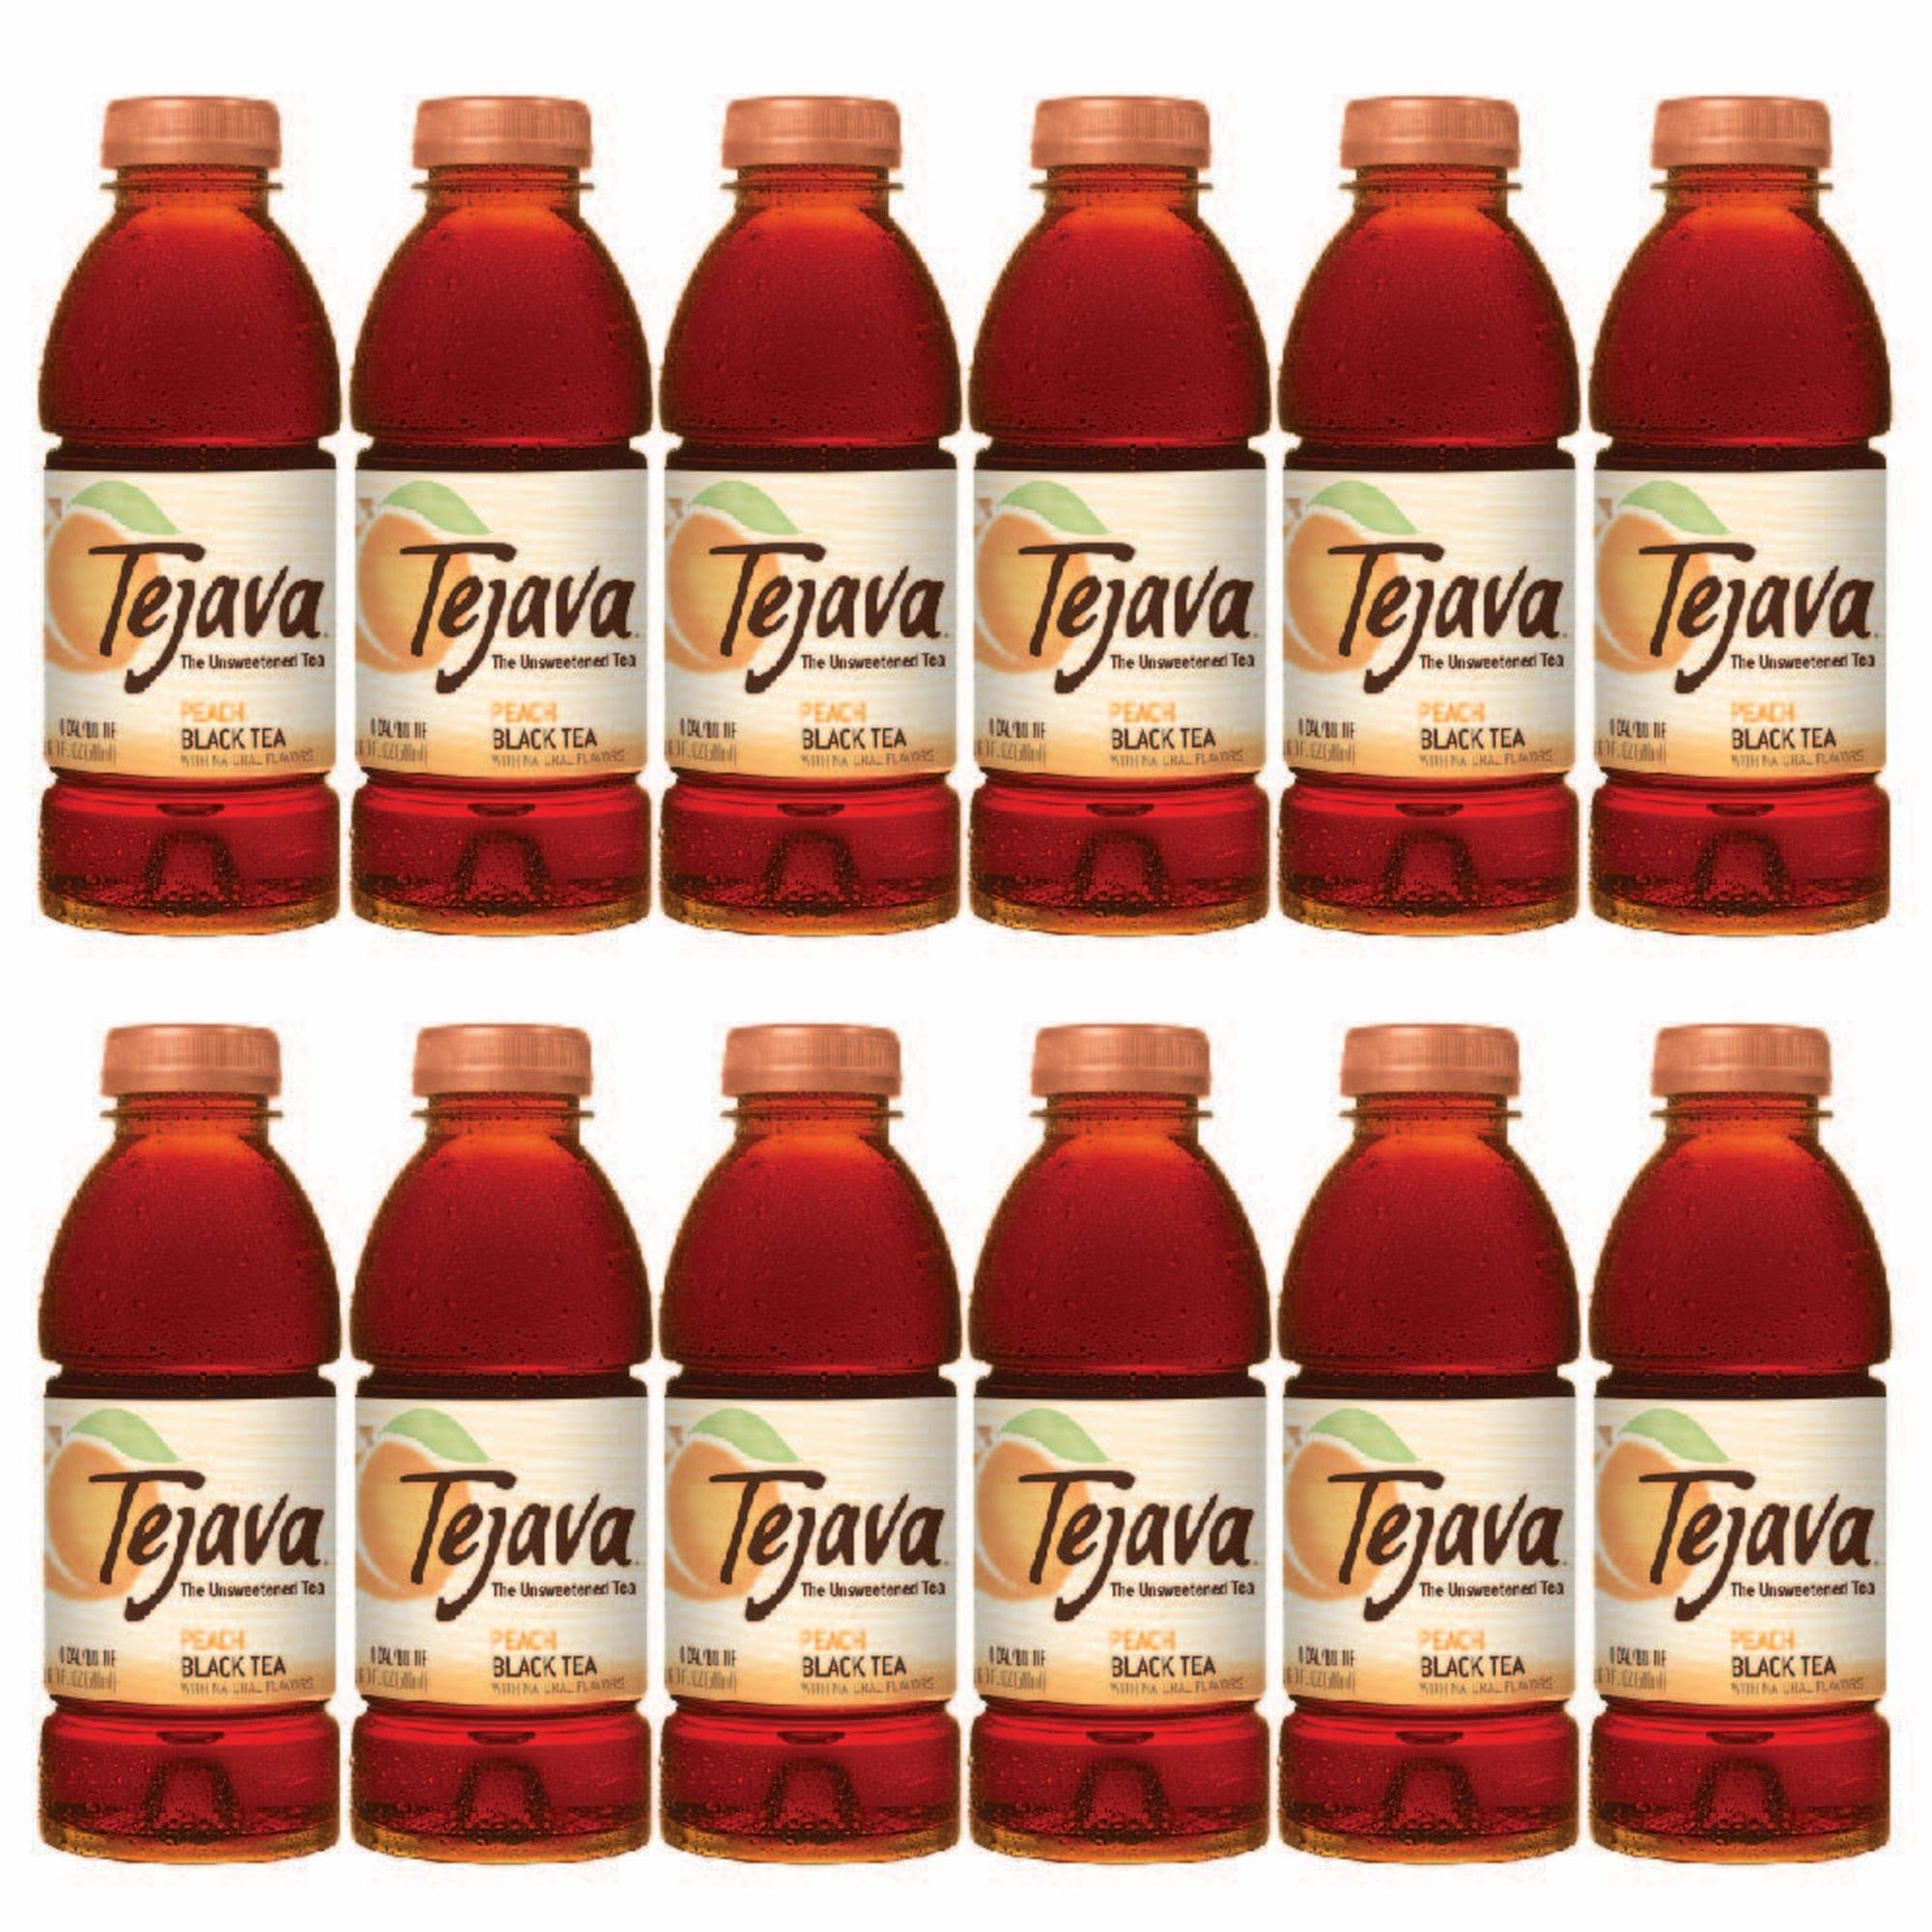 Tejava Unsweetened Peach Iced Tea, 16.9 oz PET Bottles, Award Winning, Non-GMO-Verified, from Rainforest Alliance-Certified farms (12 Pack) by Tejava